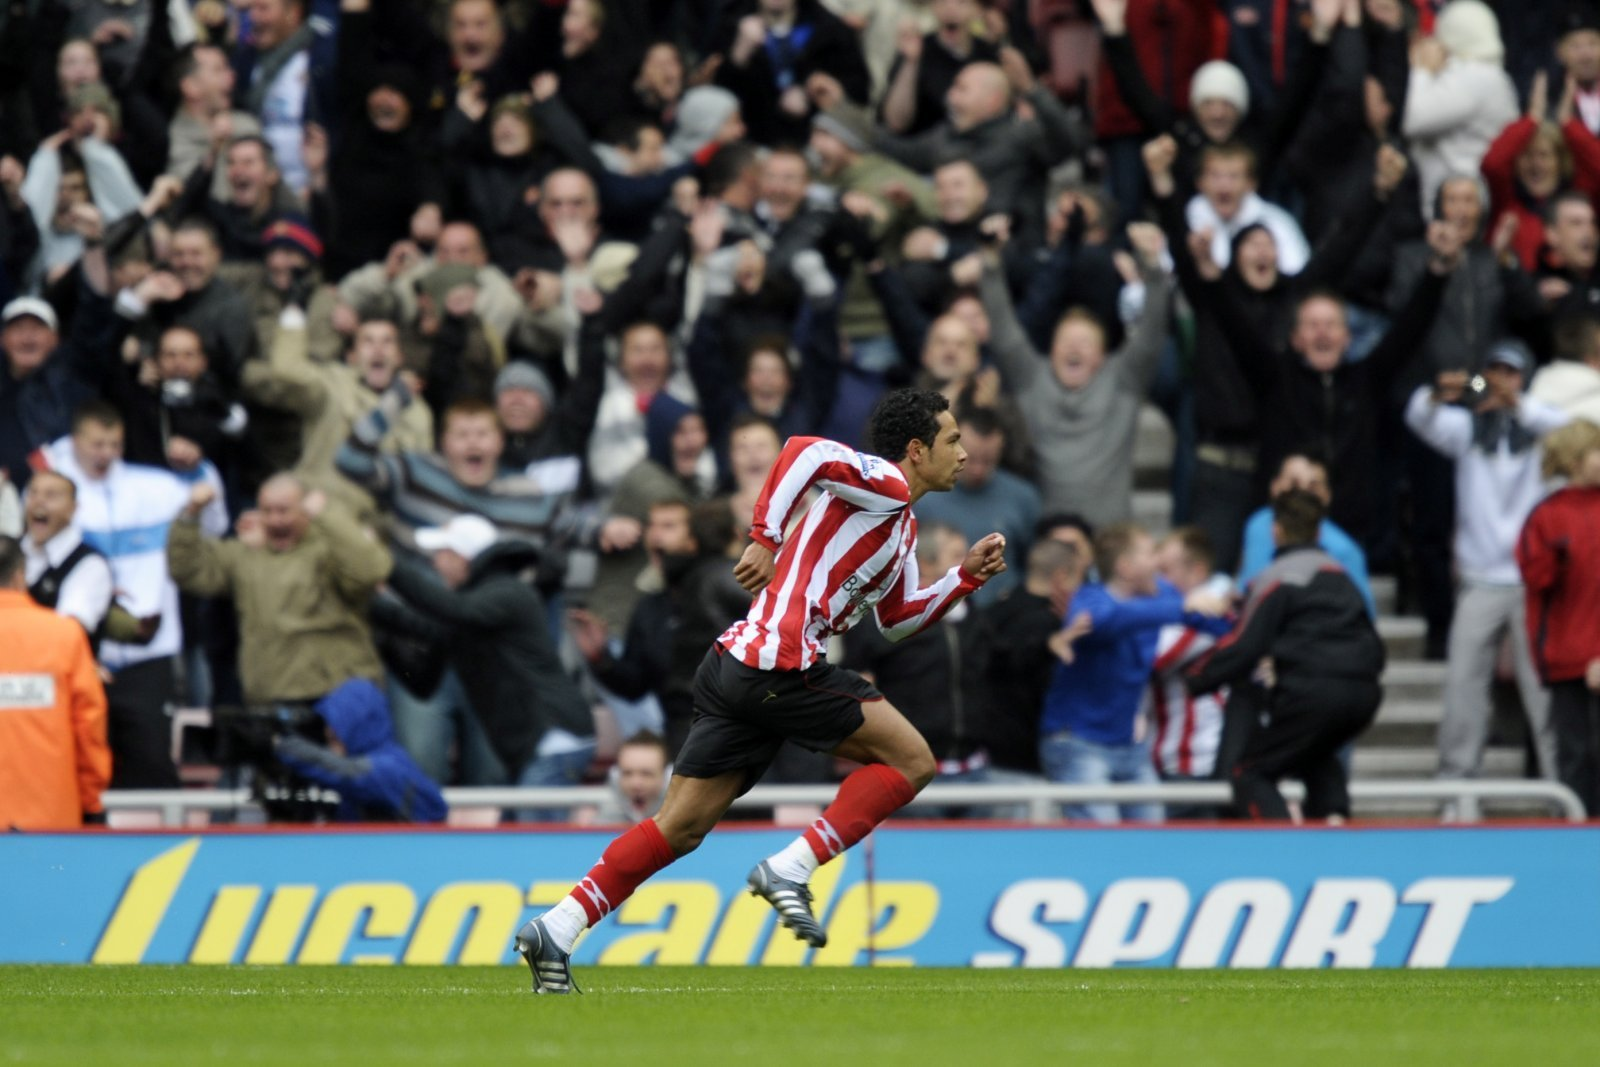 Sunderland: These fans have been reminiscing about Kieran Richardson's strike against Newcastle United